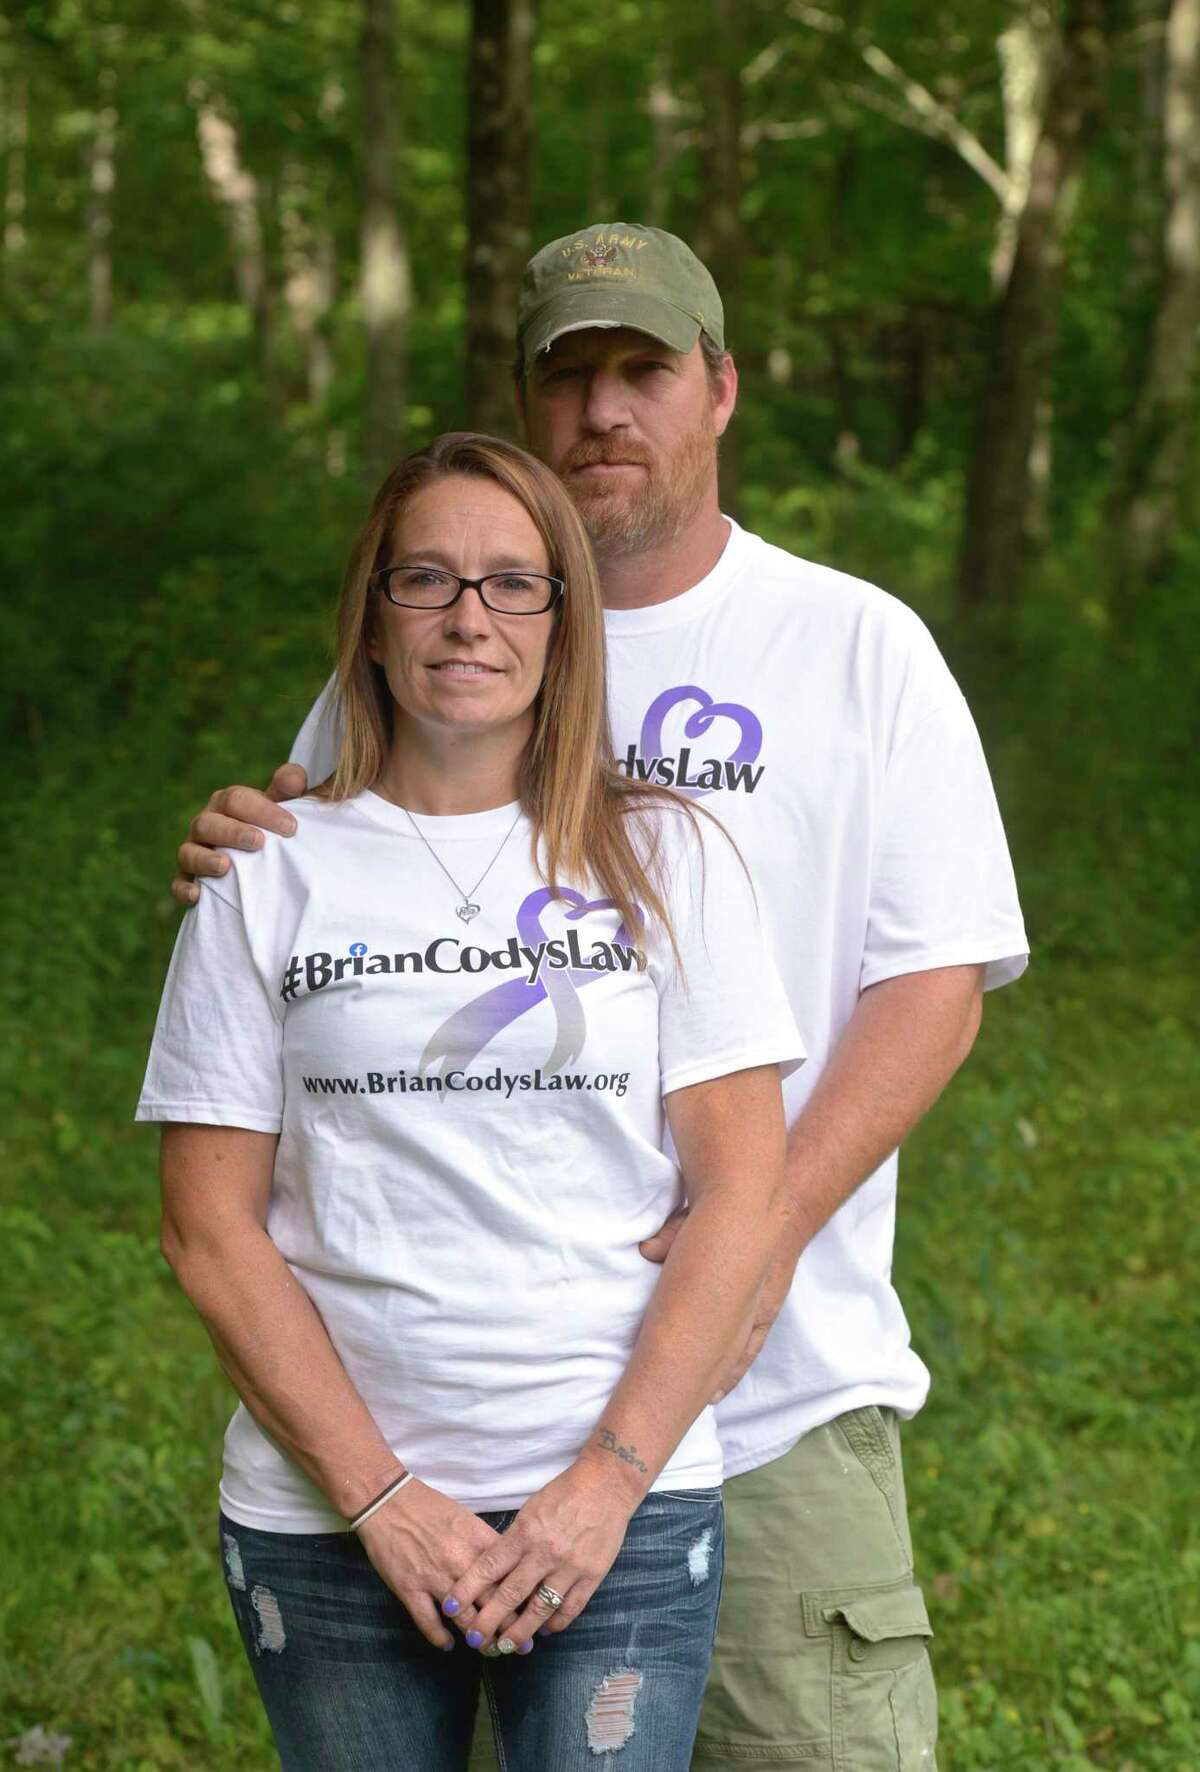 The parents of Brian Cody, Tracey and Tony Morrissey, marked the one year anniversary of his fatal overdose this past Monday. New Milford, Conn, Friday, August 14, 2020.